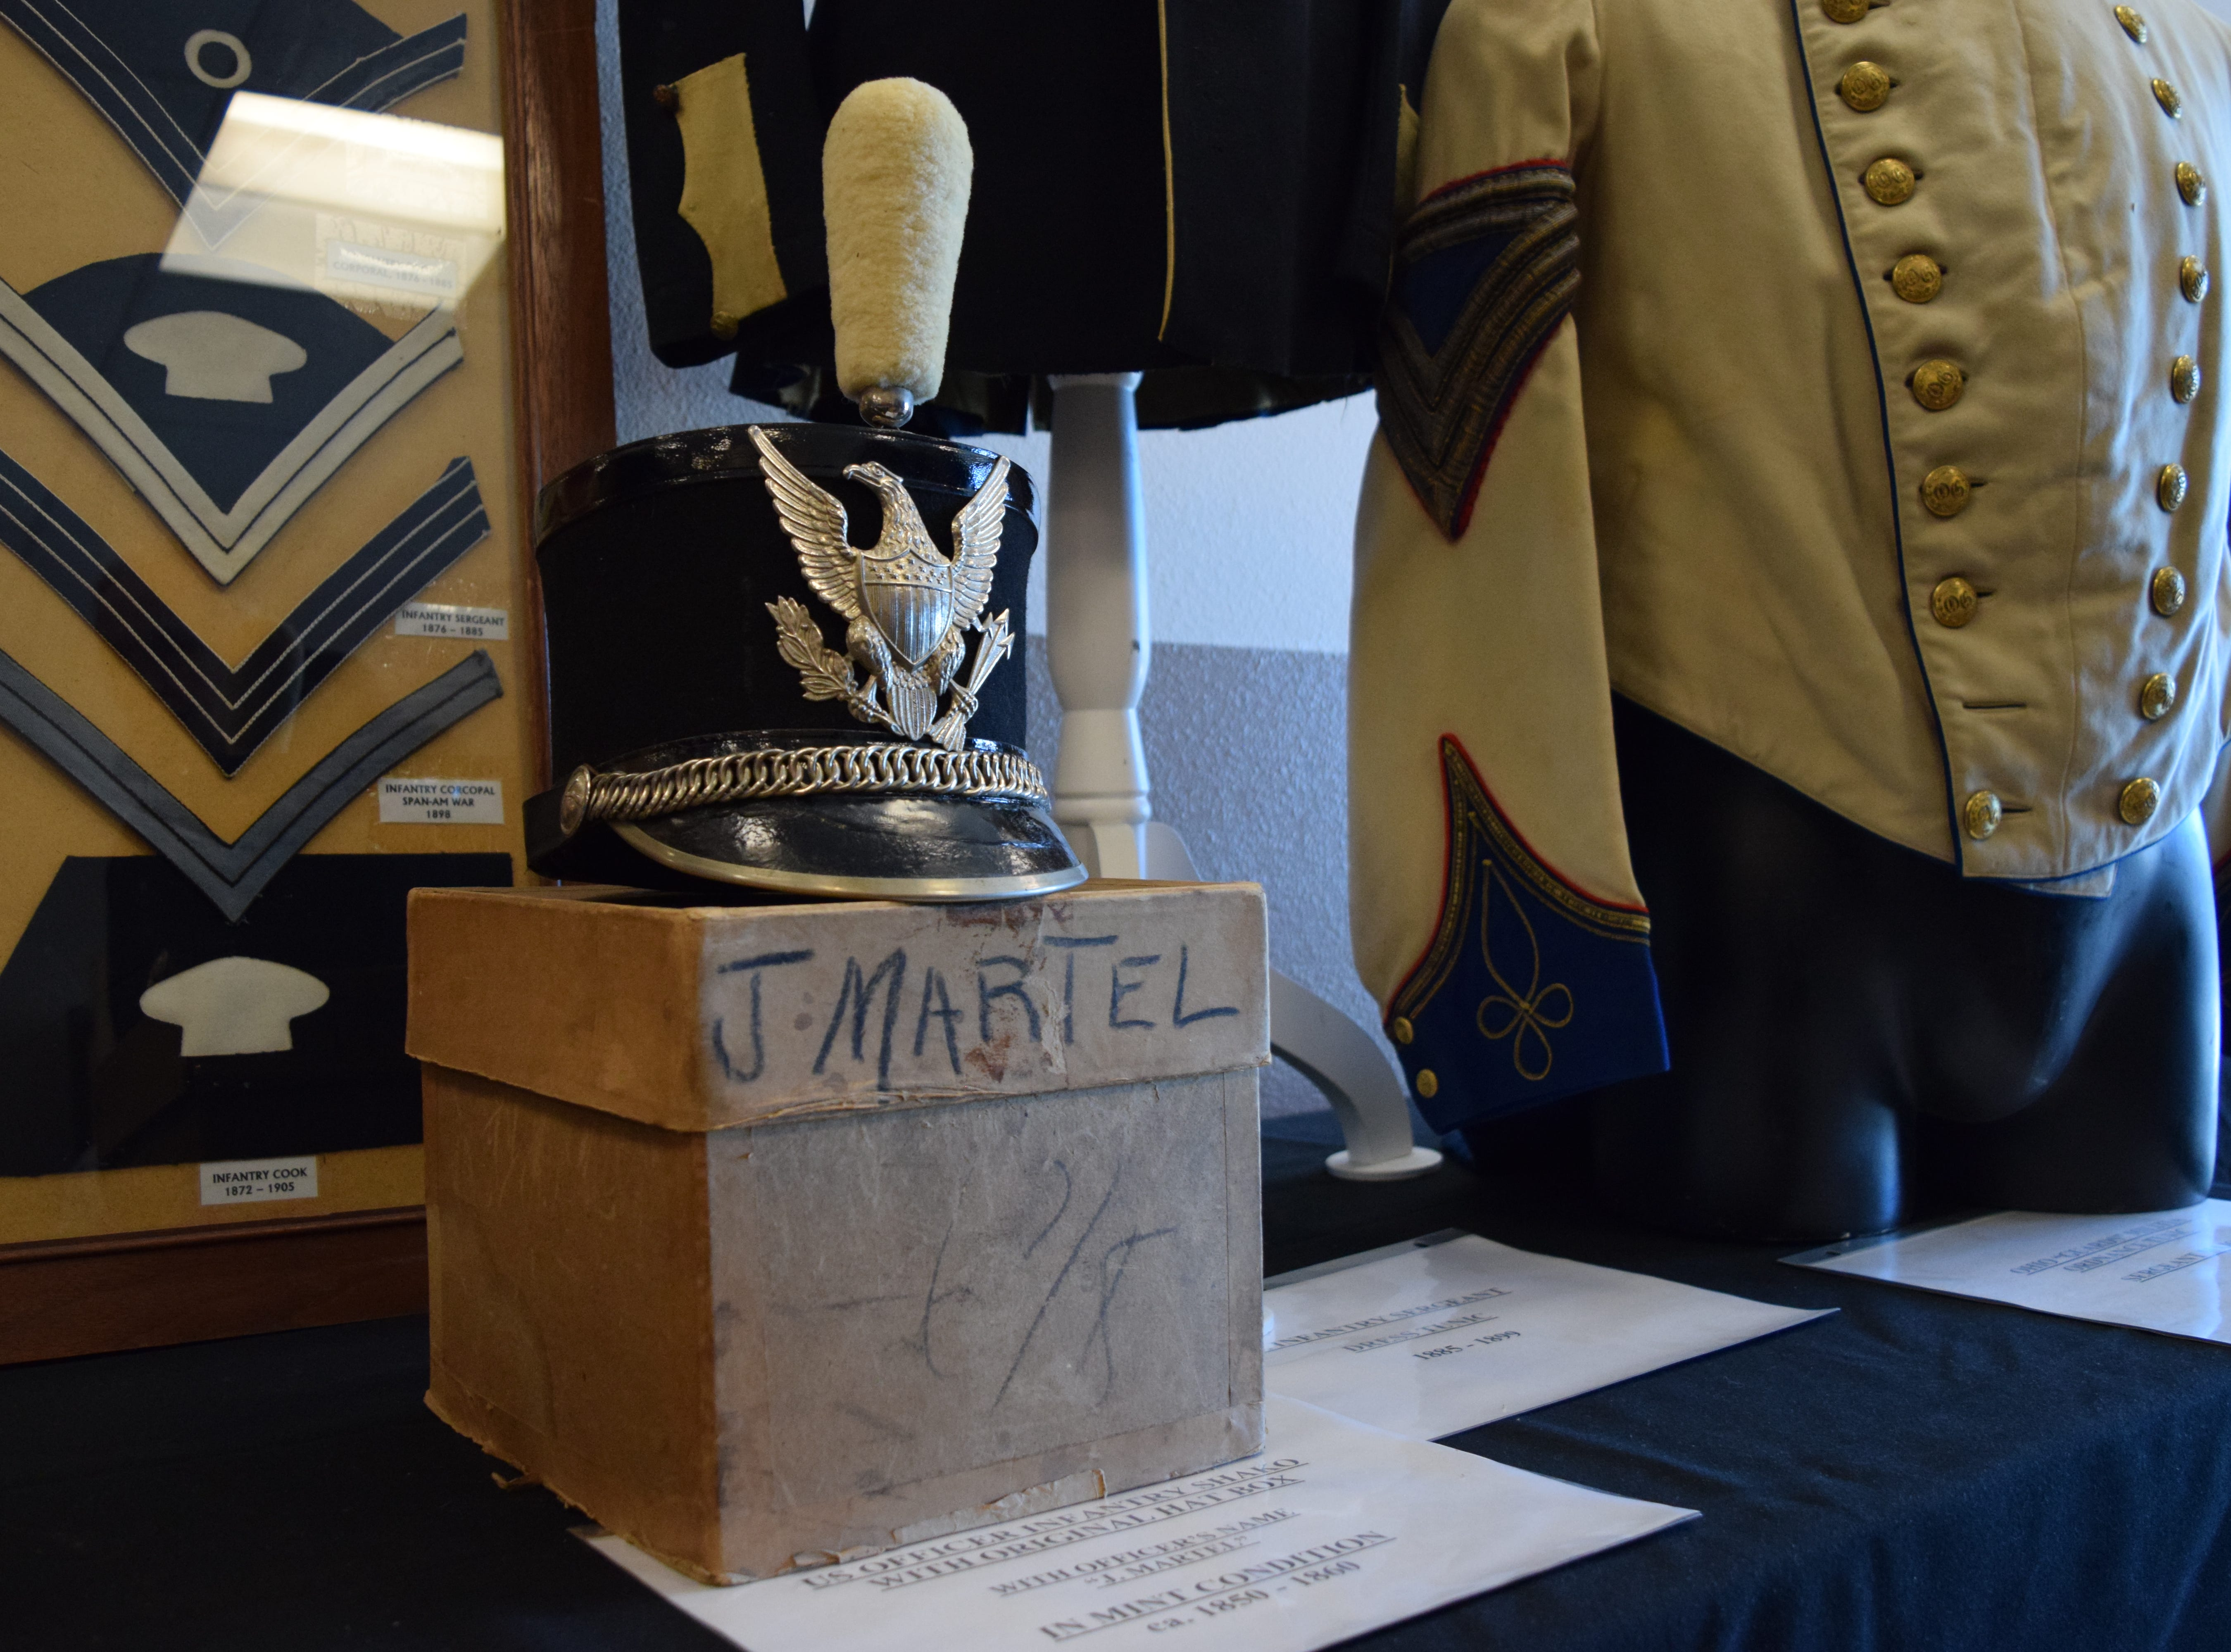 Once worn by infantry officer J. Martel, this mint-condition shako is estimated to be from the 1850s. Unique to this shako is the original hat box with name and size, as hat boxes were usually discarded soon after issue. — Antiques Treasures Show at the Farm and Ranch Heritage Museum, Jan. 26, 2019.